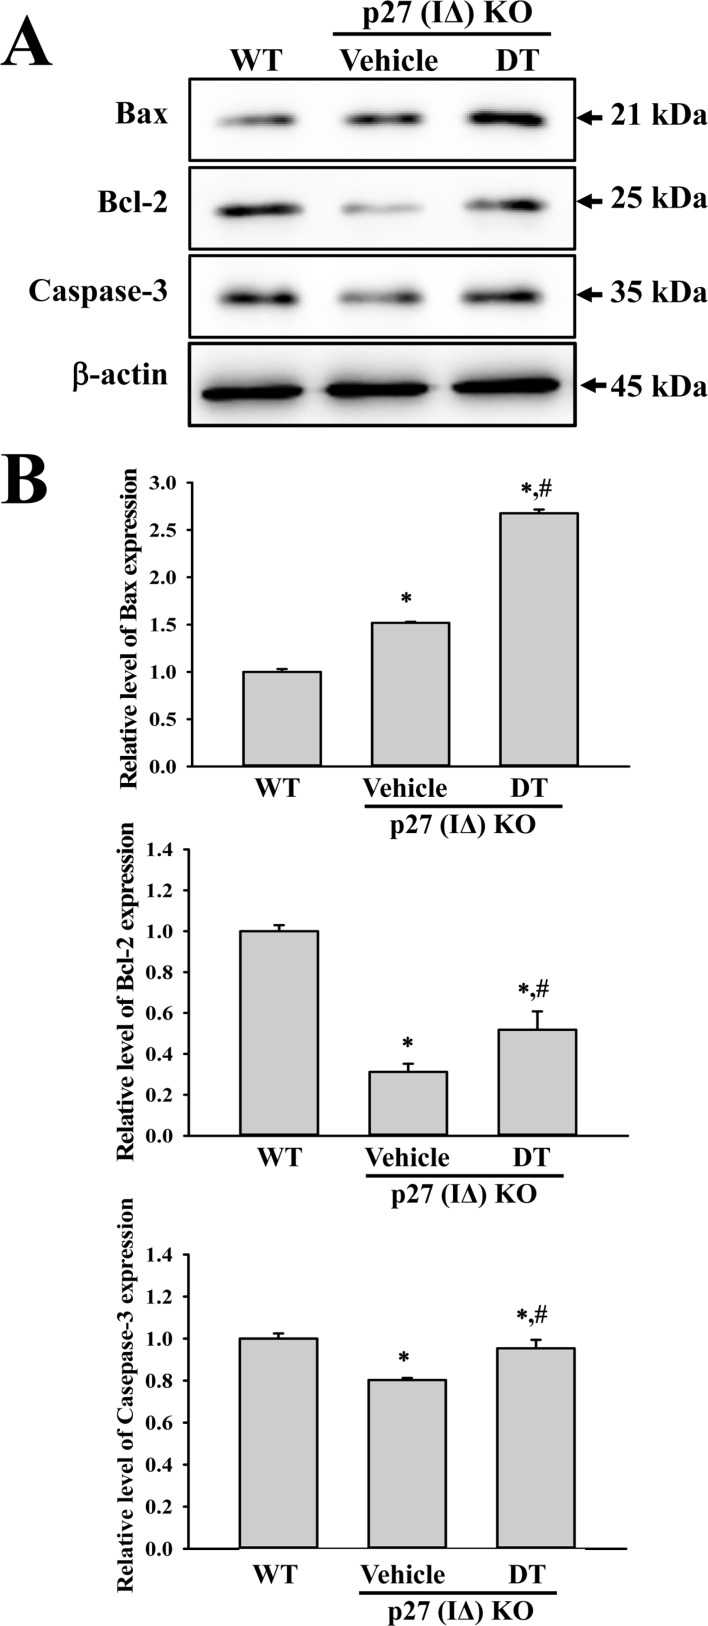 Expression analysis of apoptotic proteins. Alterations in the expressions of Bax, Bcl-2 and Caspase-3 proteins were determined in DT-treated p27 (IΔ) KO mice by Western blot assays using HRP-labeled anti-rabbit IgG antibody. Band intensities were determined using an imaging densitometer, and the expression level of 6 proteins were evaluated relative to the intensity of actin bands. The data represents the means±SD (n=8). *, indicates P